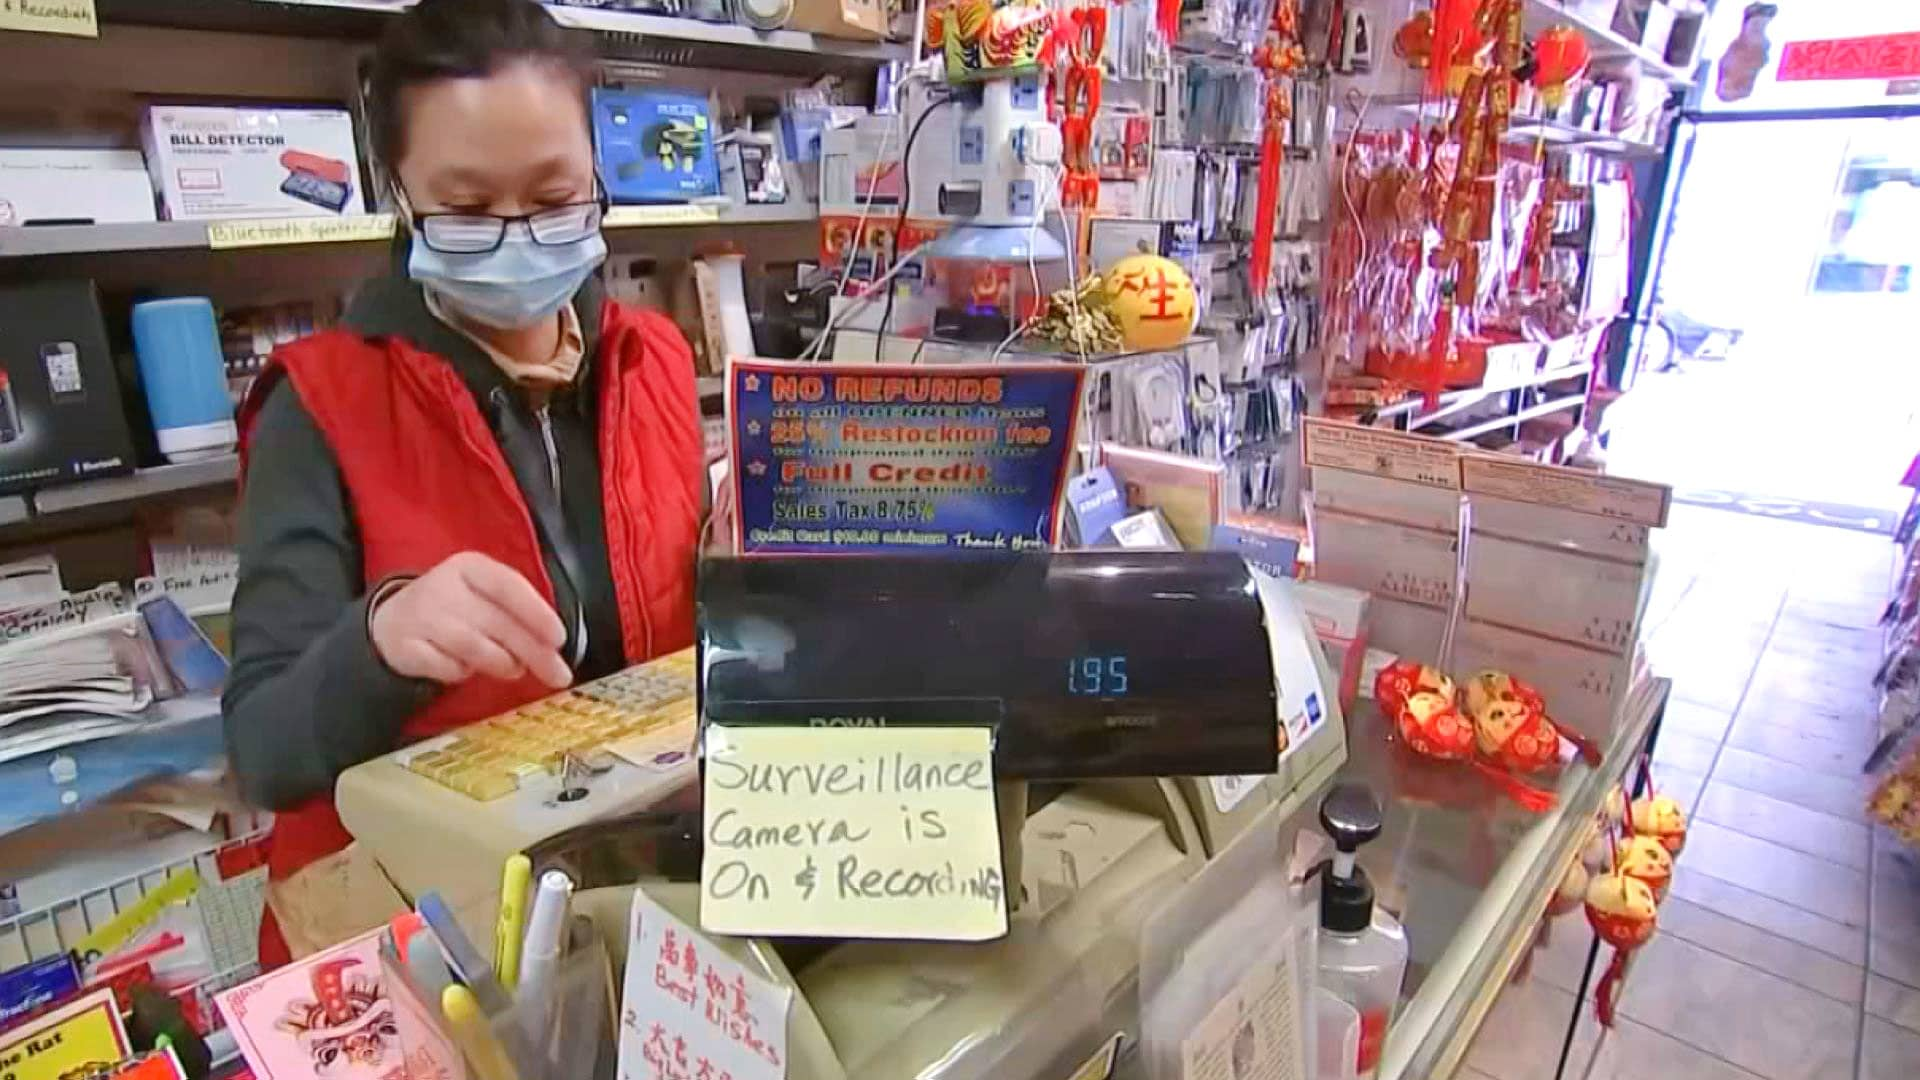 A small business owner in Chinatown, San Francisco